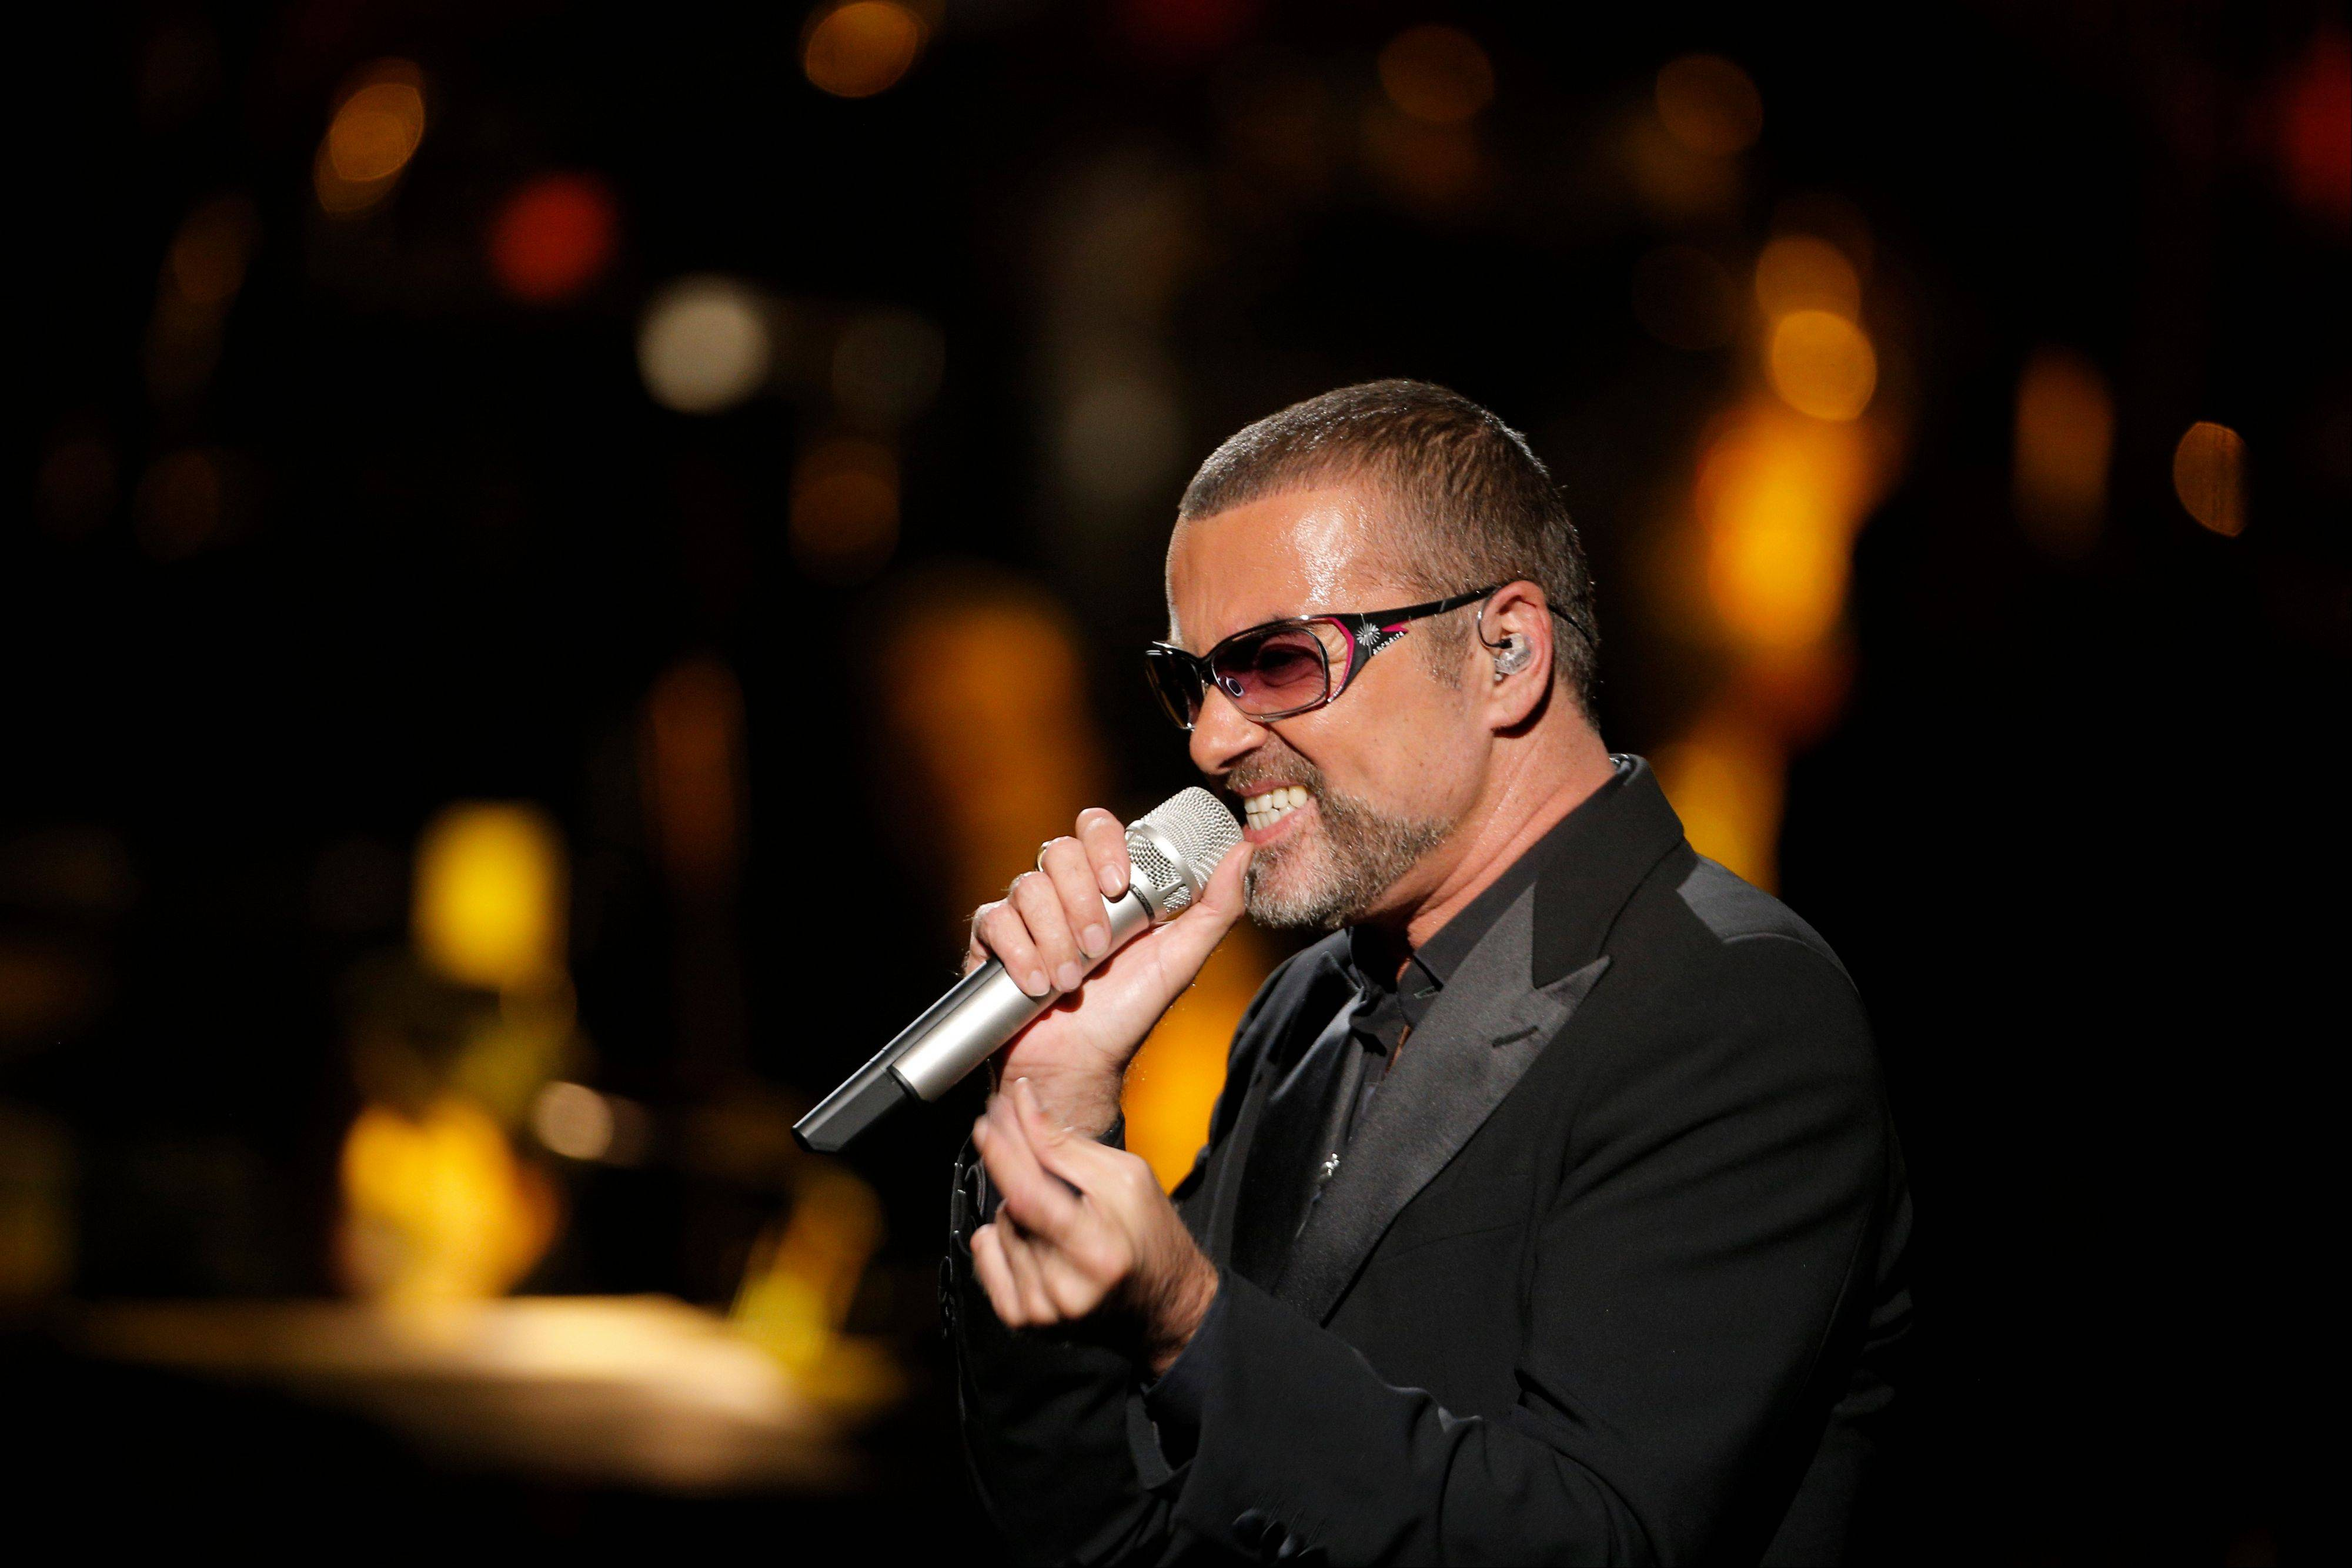 George Michael�s publicist says the singer is being treated for minor injuries after he was a passenger in a car crash Thursday night.